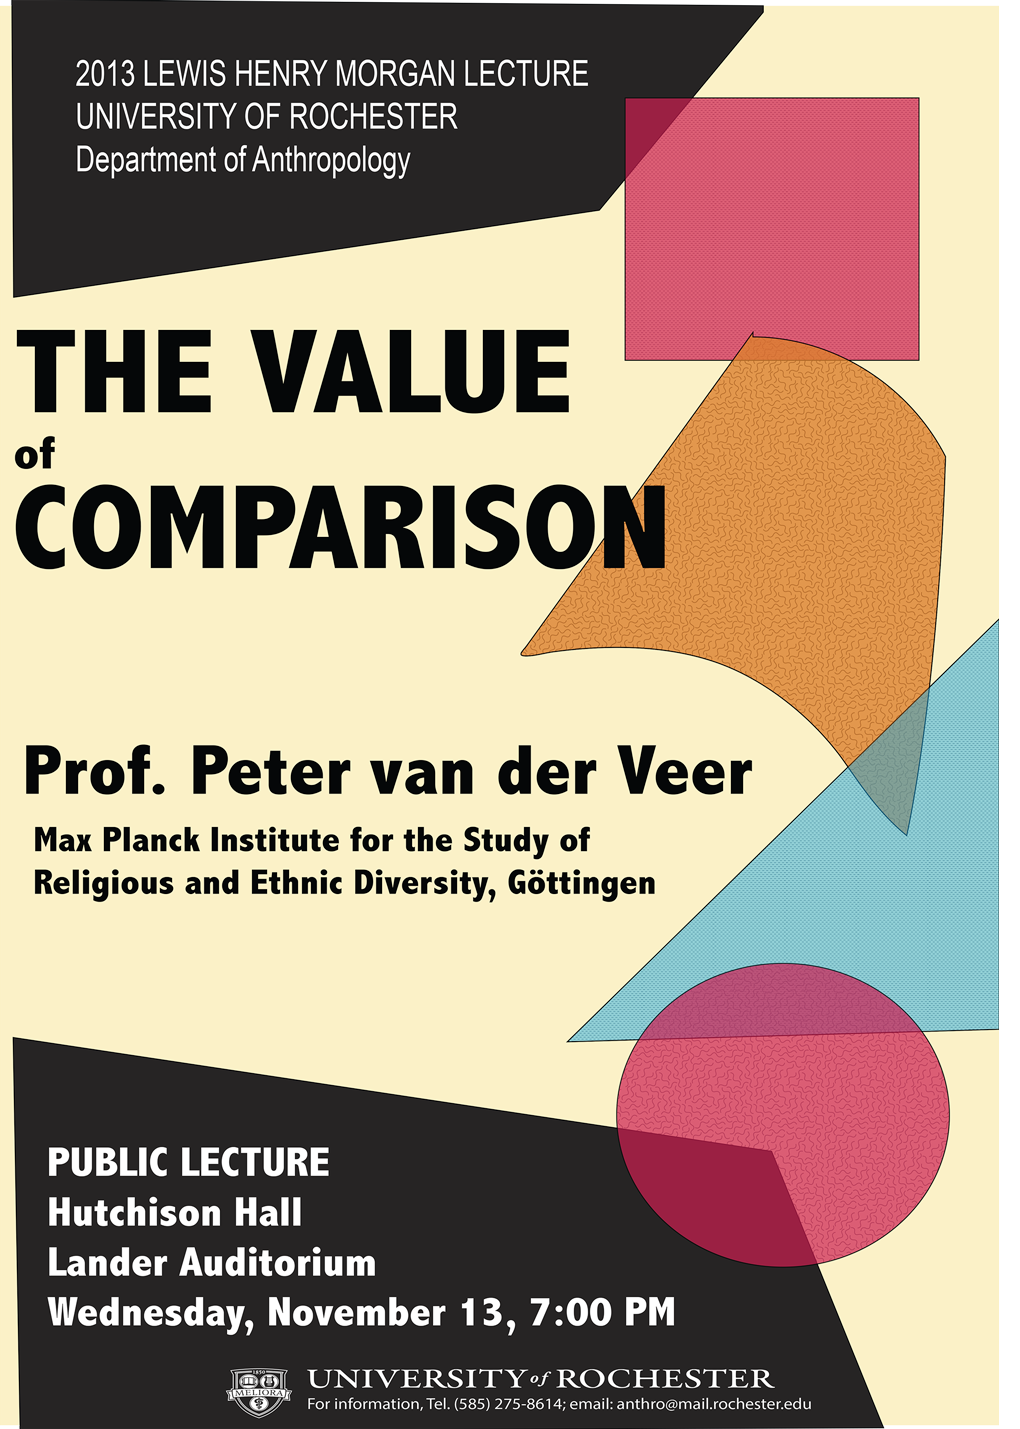 2013 Morgan Lecture Poster